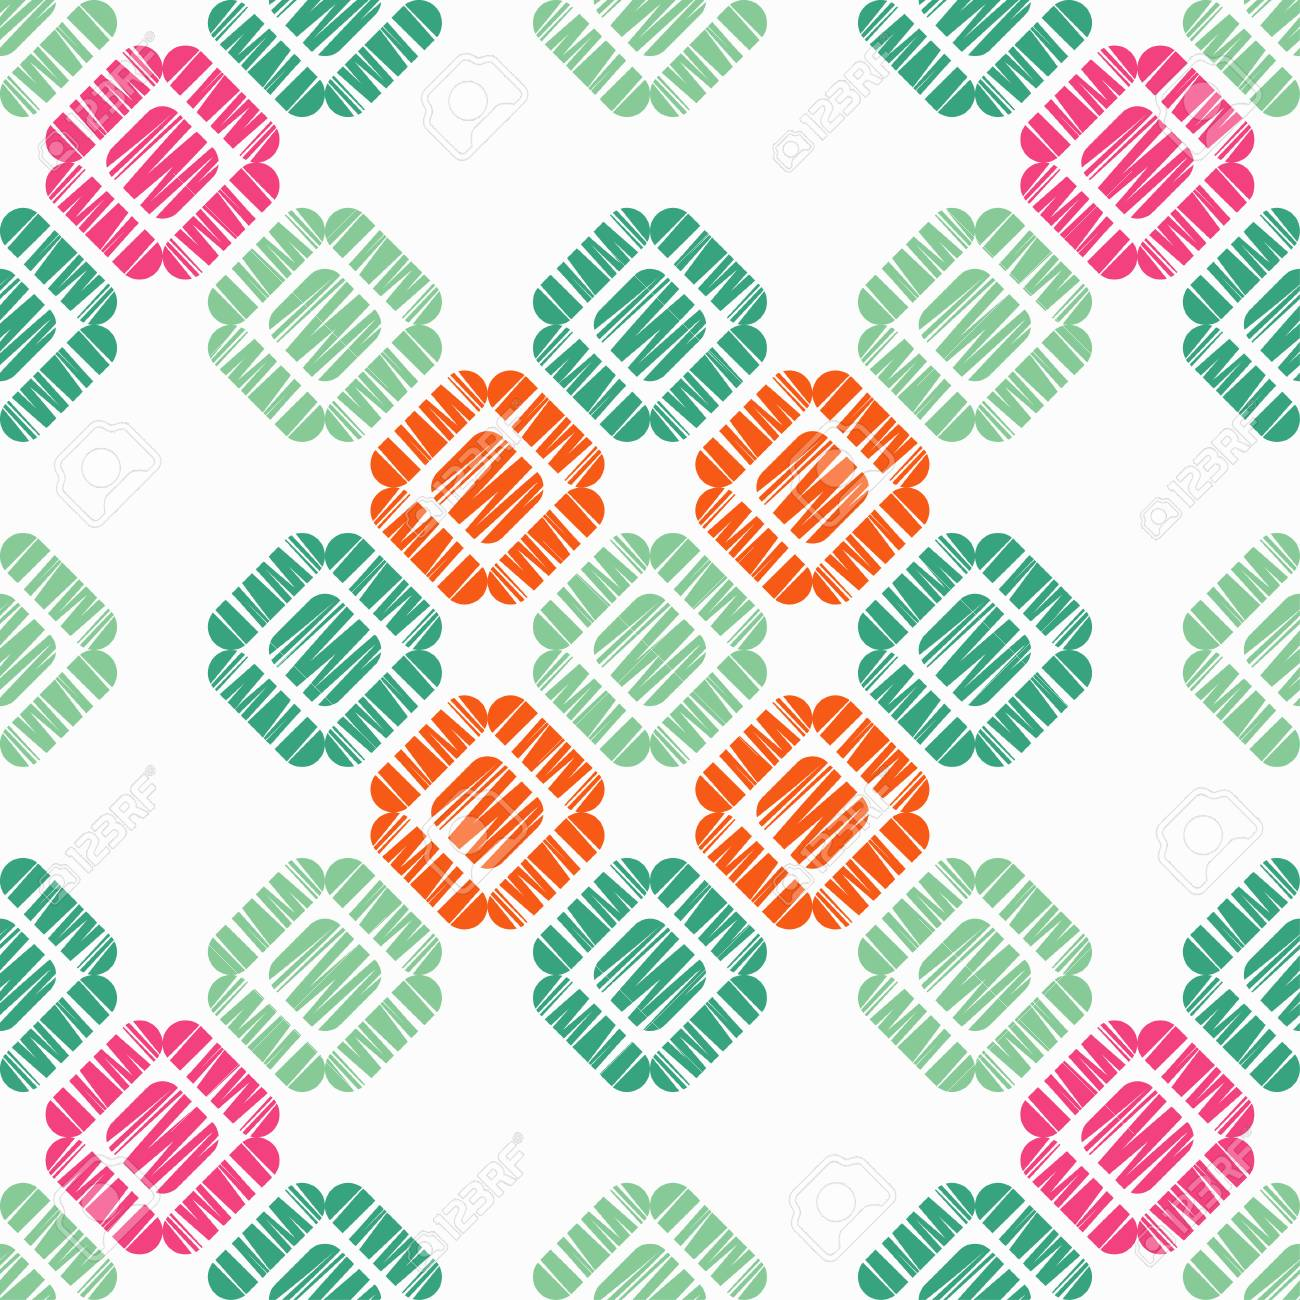 Seamless abstract geometric pattern. Mosaic texture. Brushwork. Hand hatching. Scribble texture. Textile rapport. - 105415210